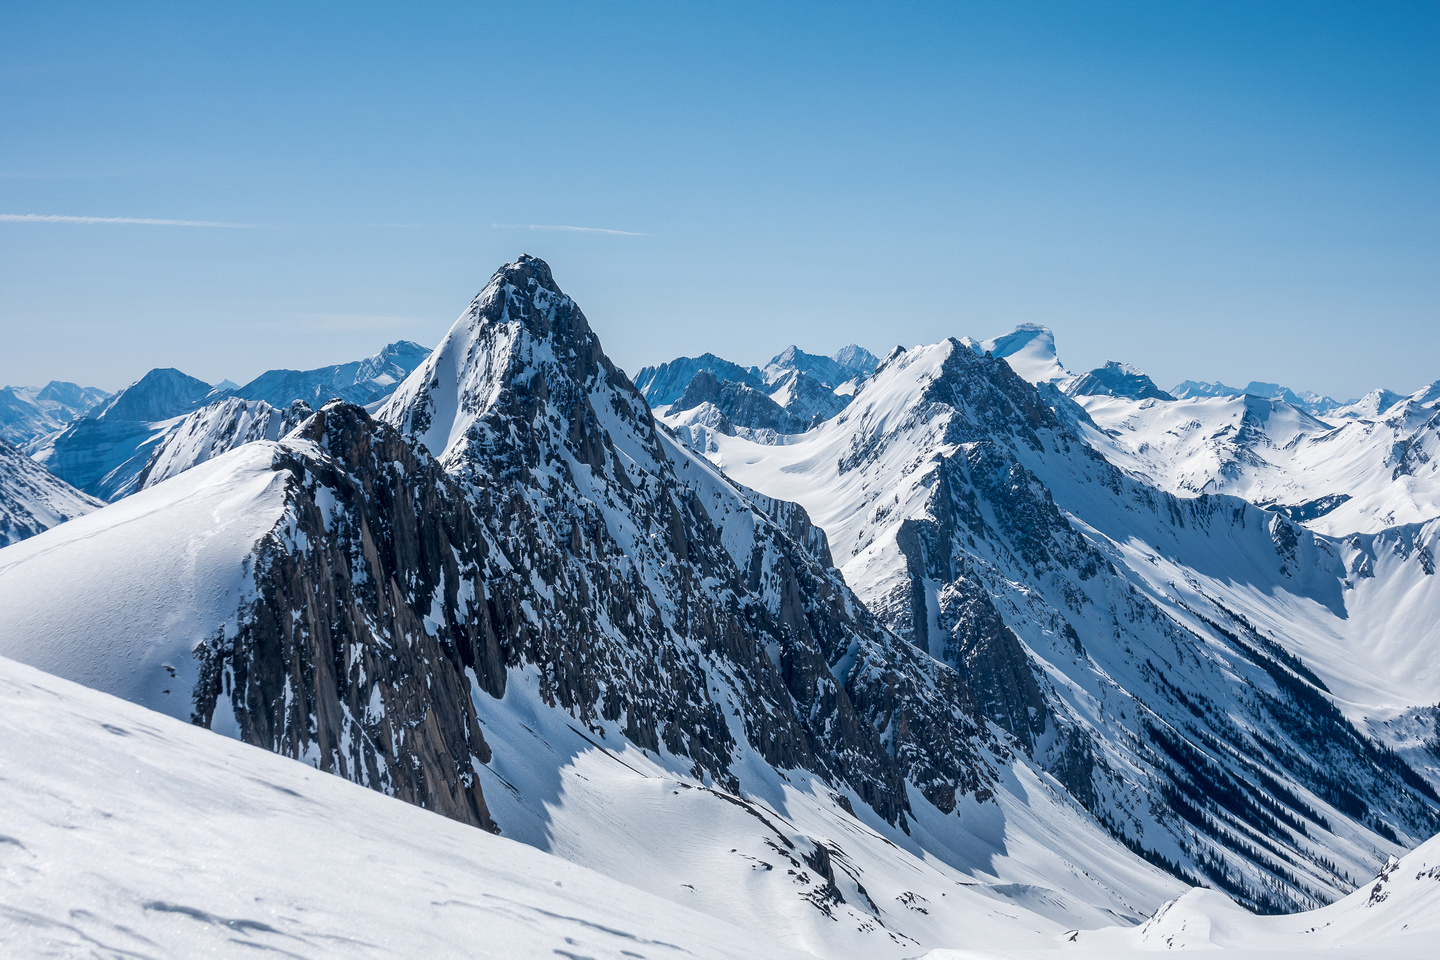 Haig Ridge in front of Mount Maude with Mount Beatty and Joffre at right.